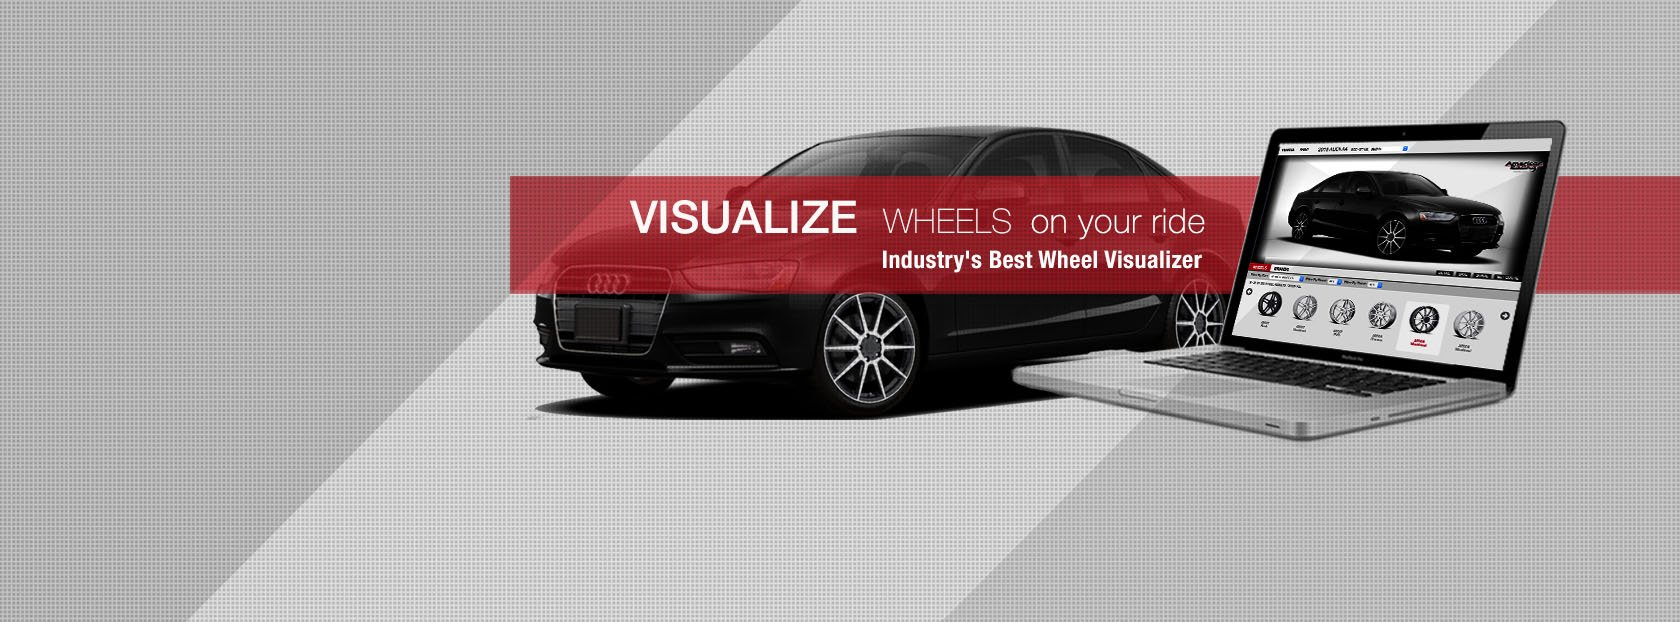 https://canadawheels.ca/wheel-visualizer.php